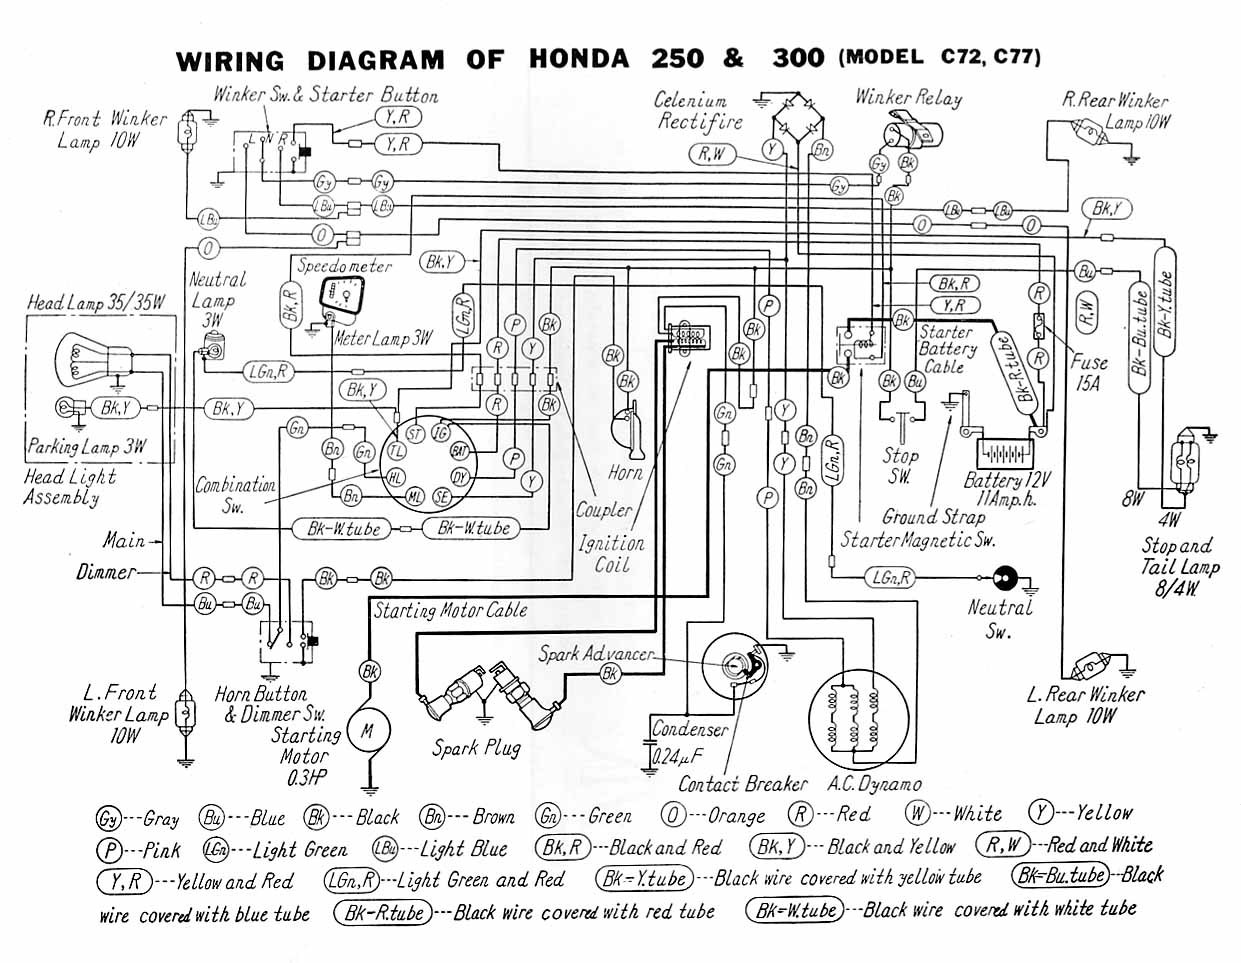 honda ex5 wiring diagram download motocicleta | diagramasde.com - diagramas electronicos y ... toyota estima wiring diagram download